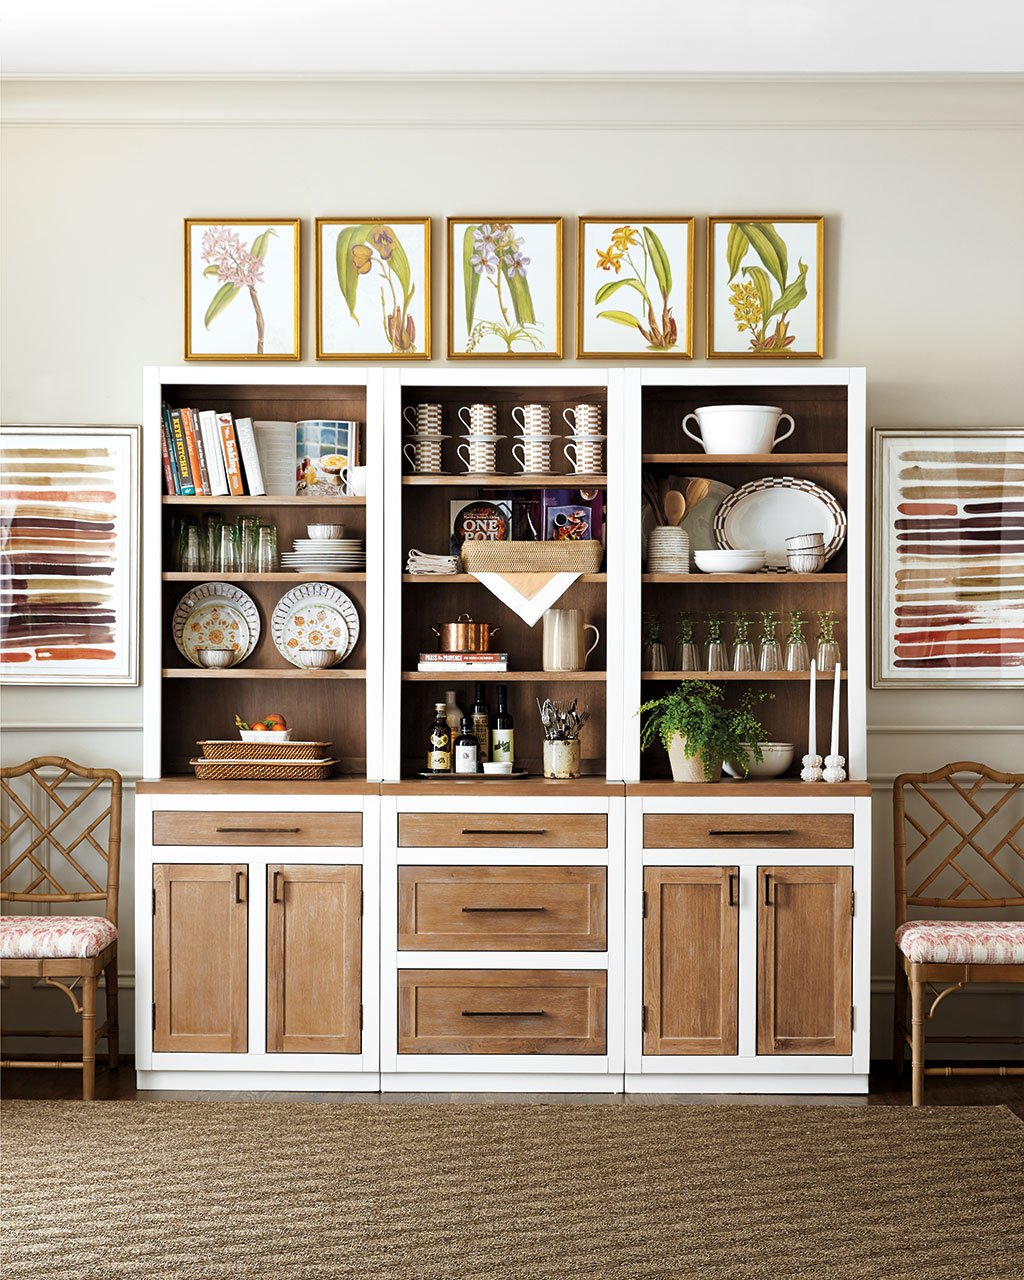 How To Style Your Kitchen Wall Shelves Decorate